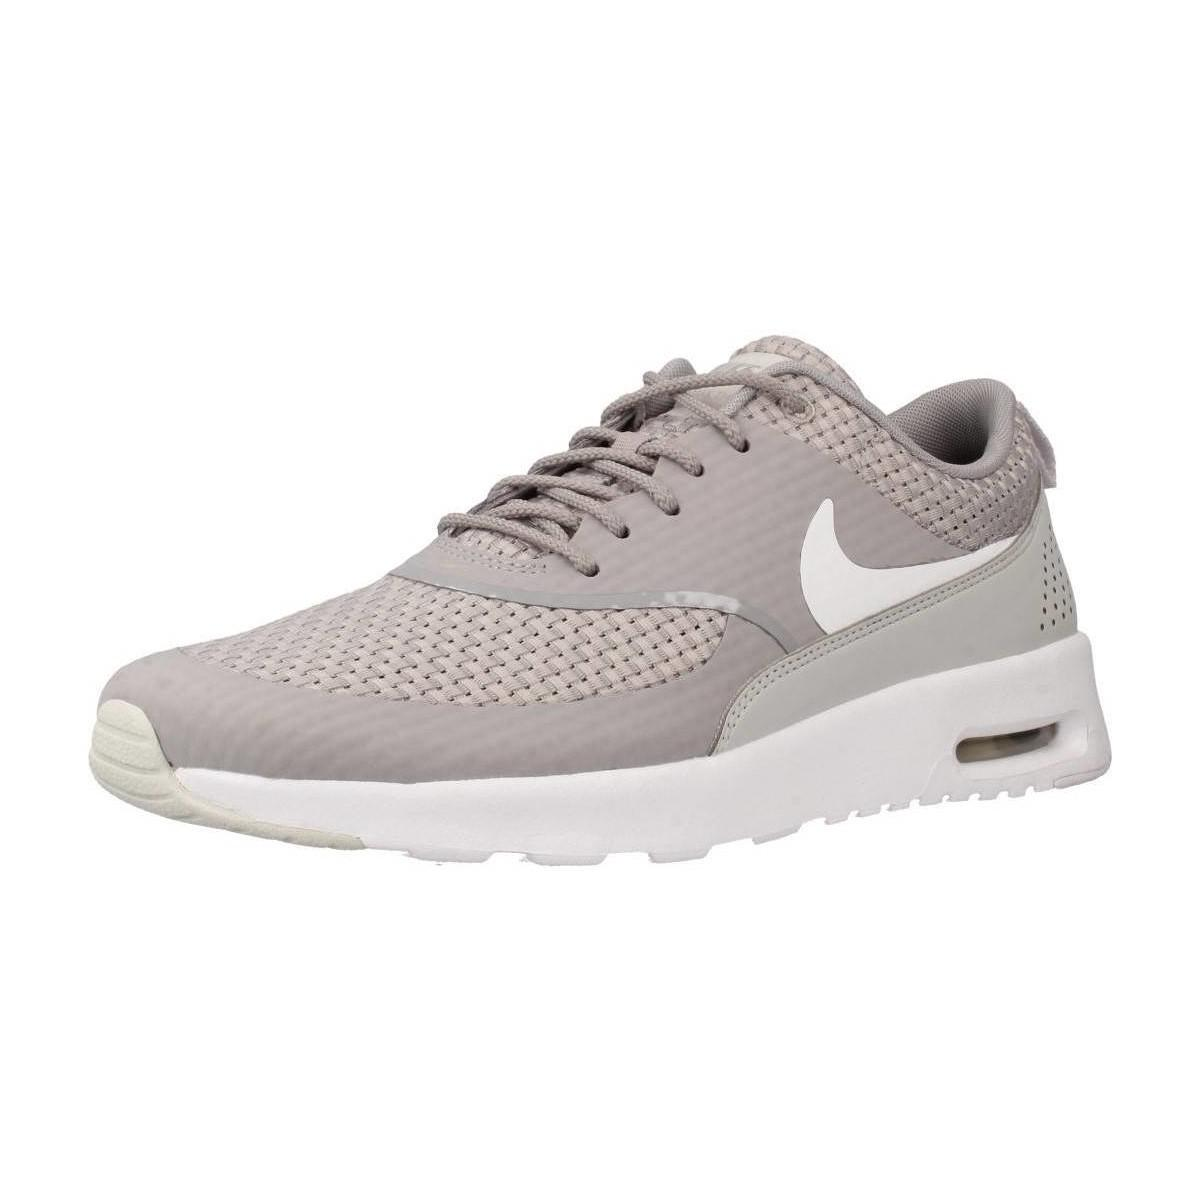 big sale 3a864 ff5ab Nike Air Max Thea Prm Women's Shoes (trainers) In Grey in Gray - Lyst